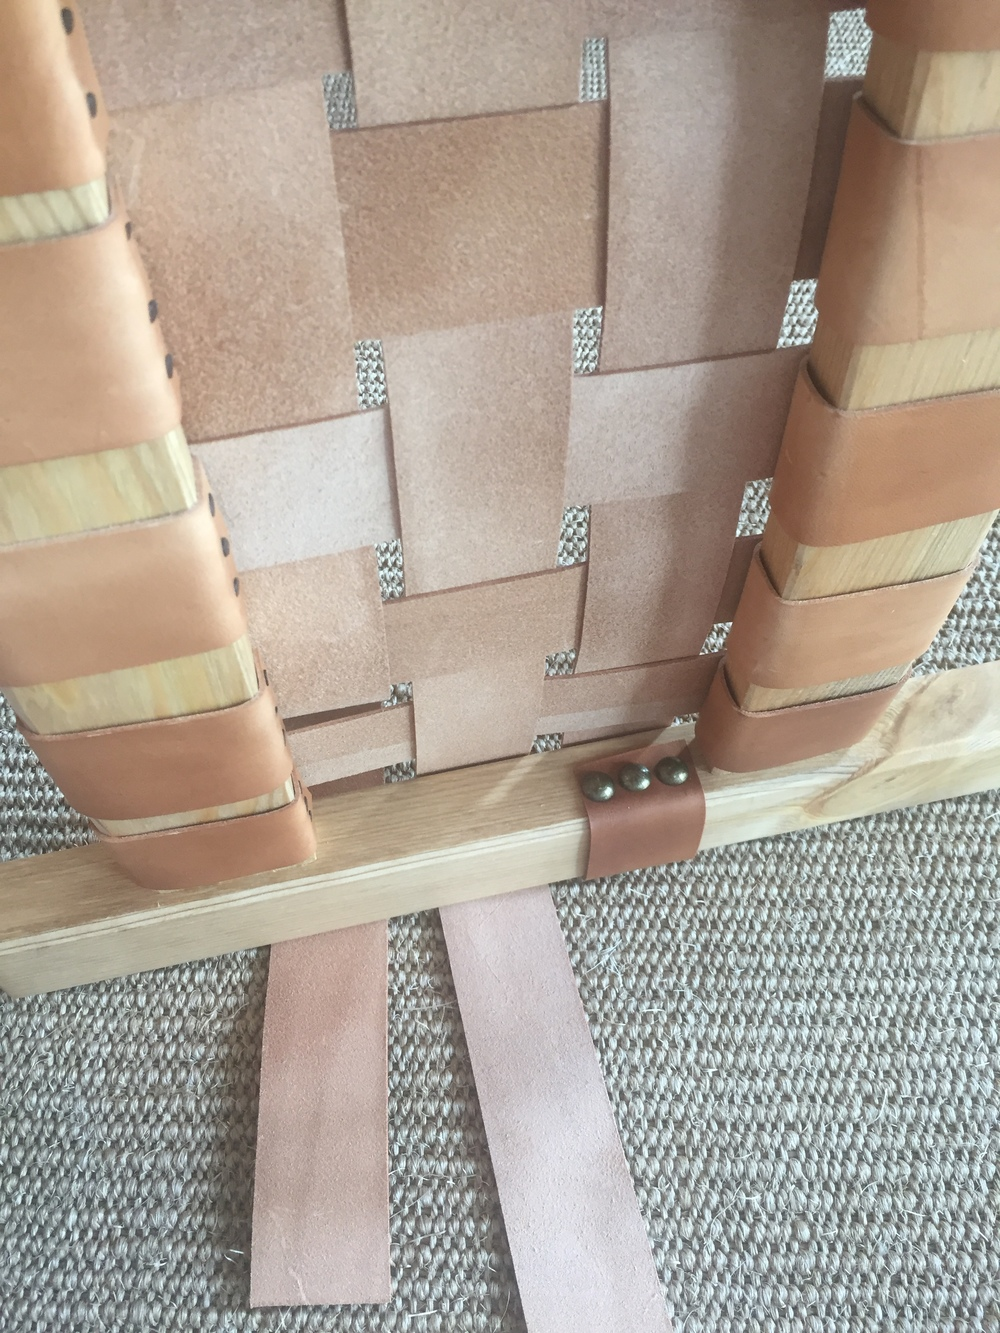 Use brass tacks to nail final three strips in place